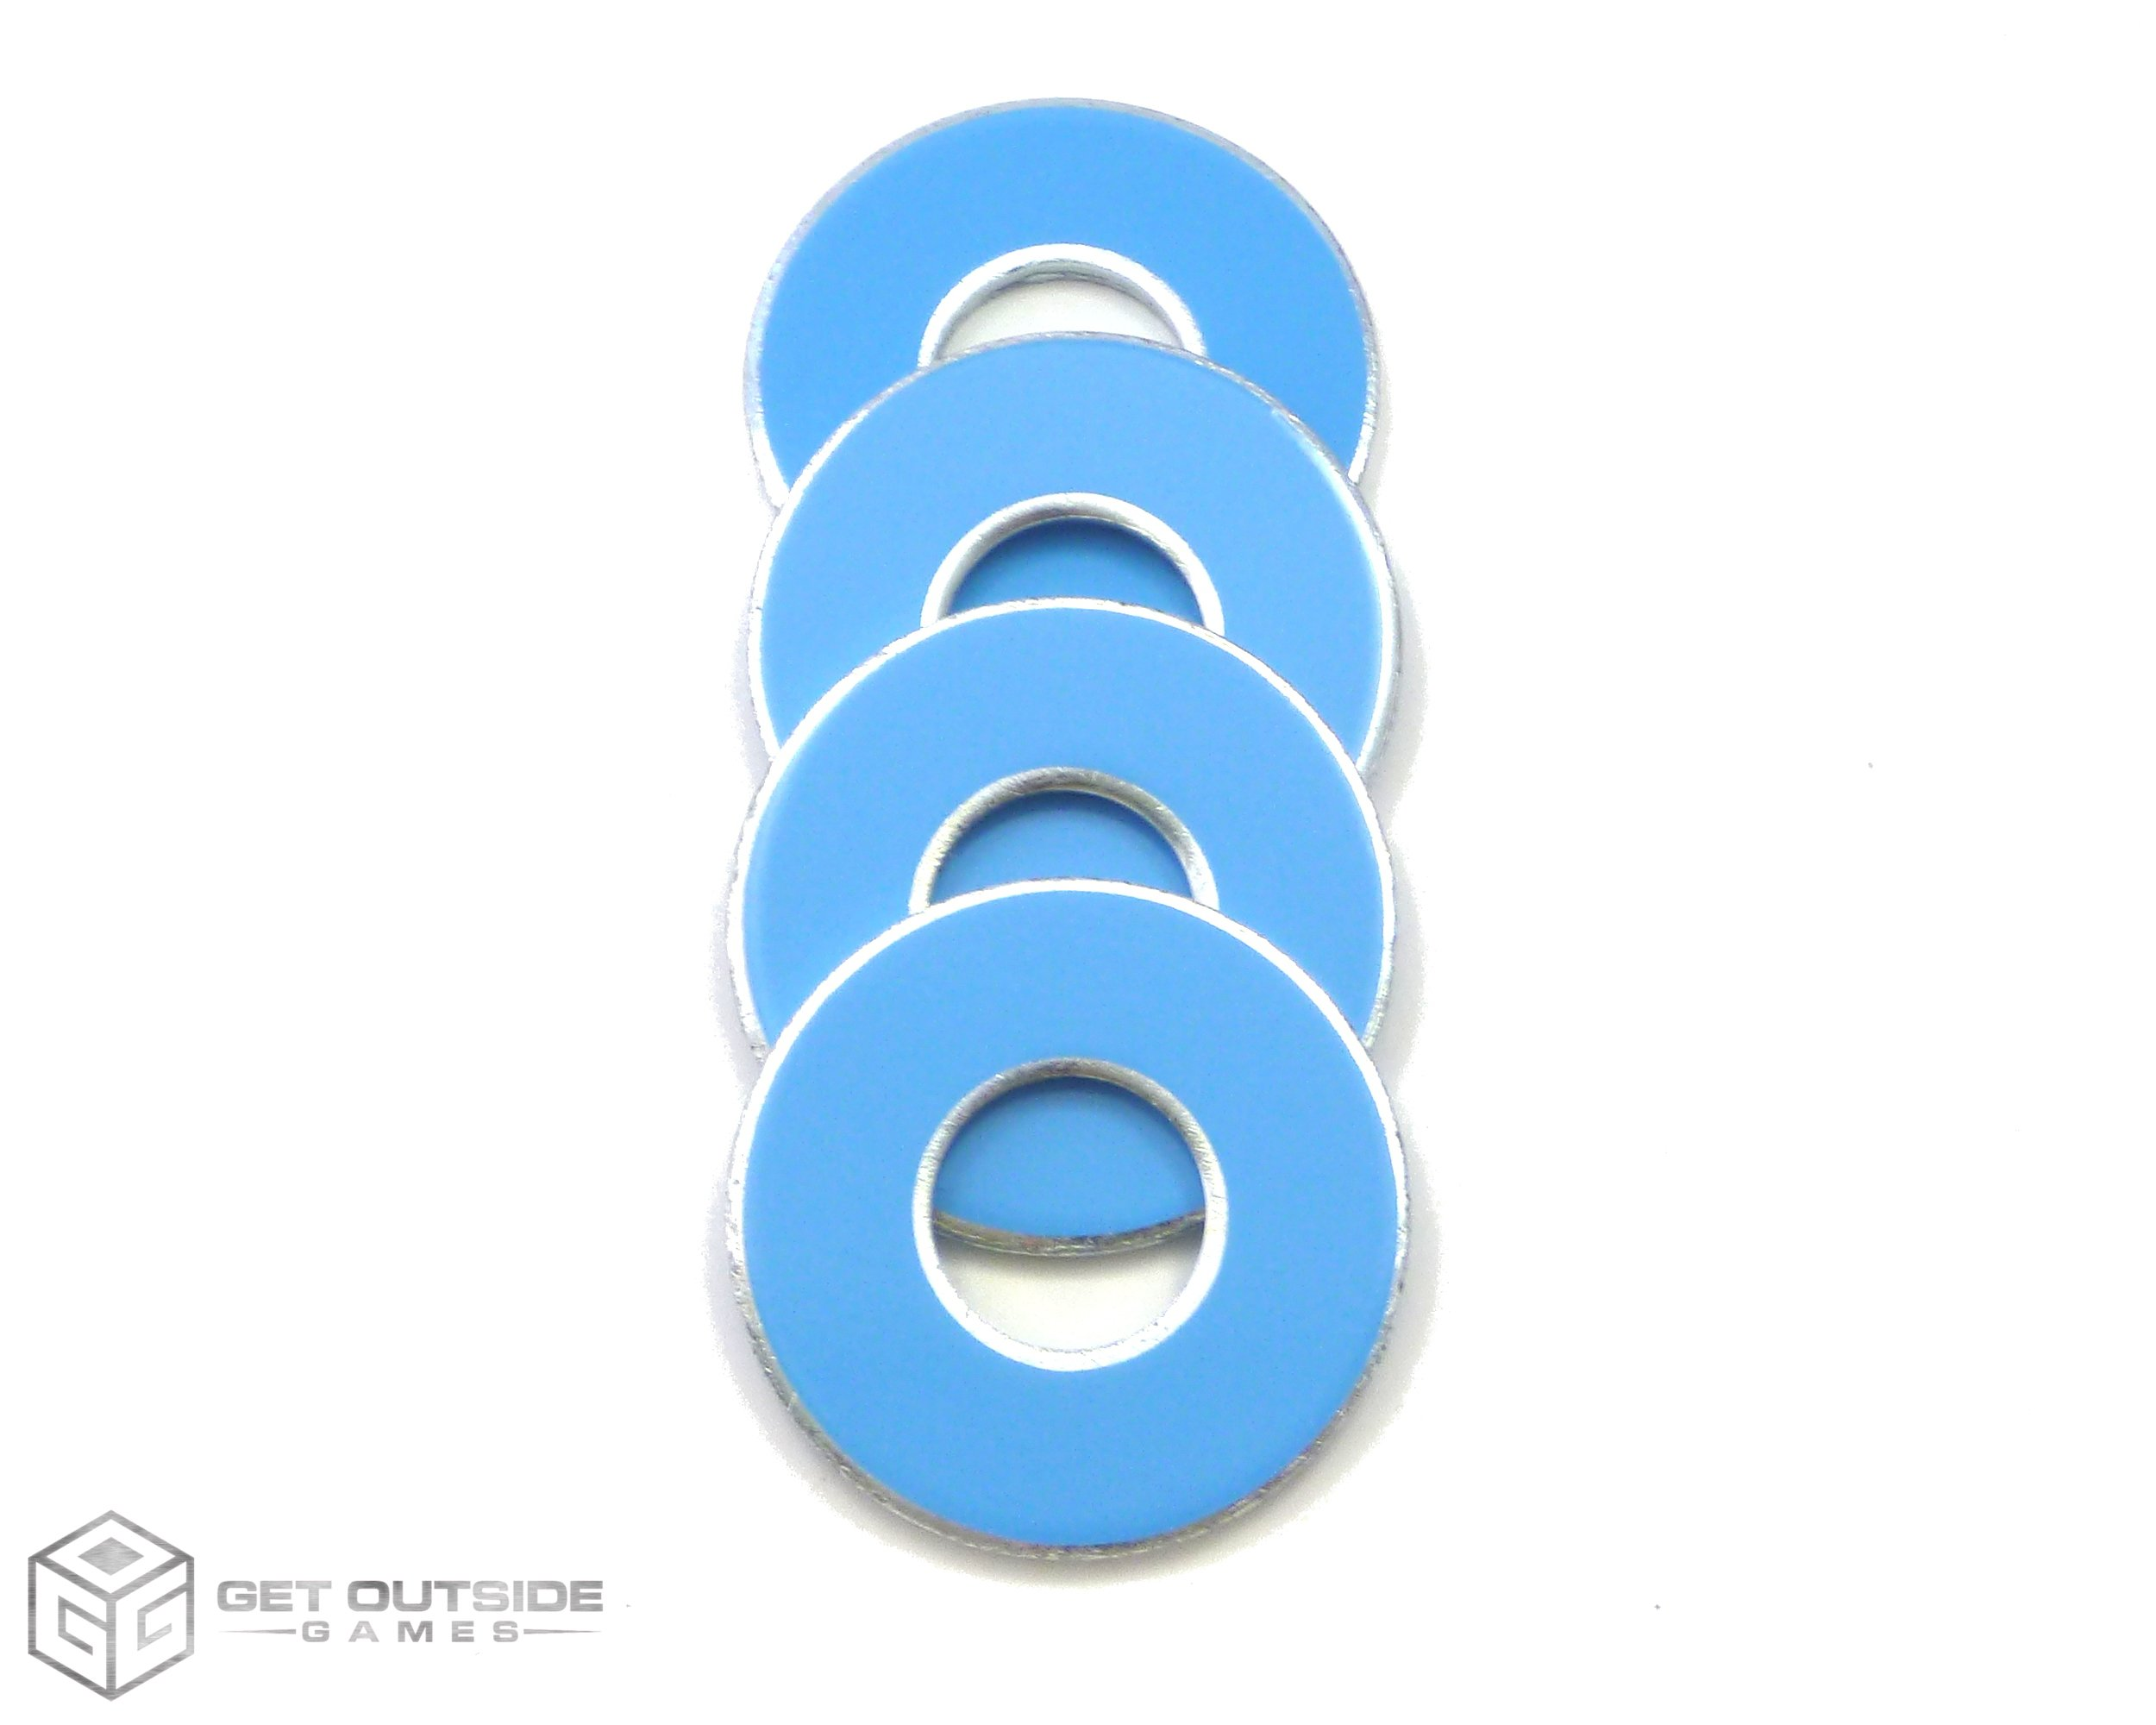 Get Outside Games 4 VVashers - Washer Toss/Washer Game Washers (Blue-Baby, 4 VVashers)